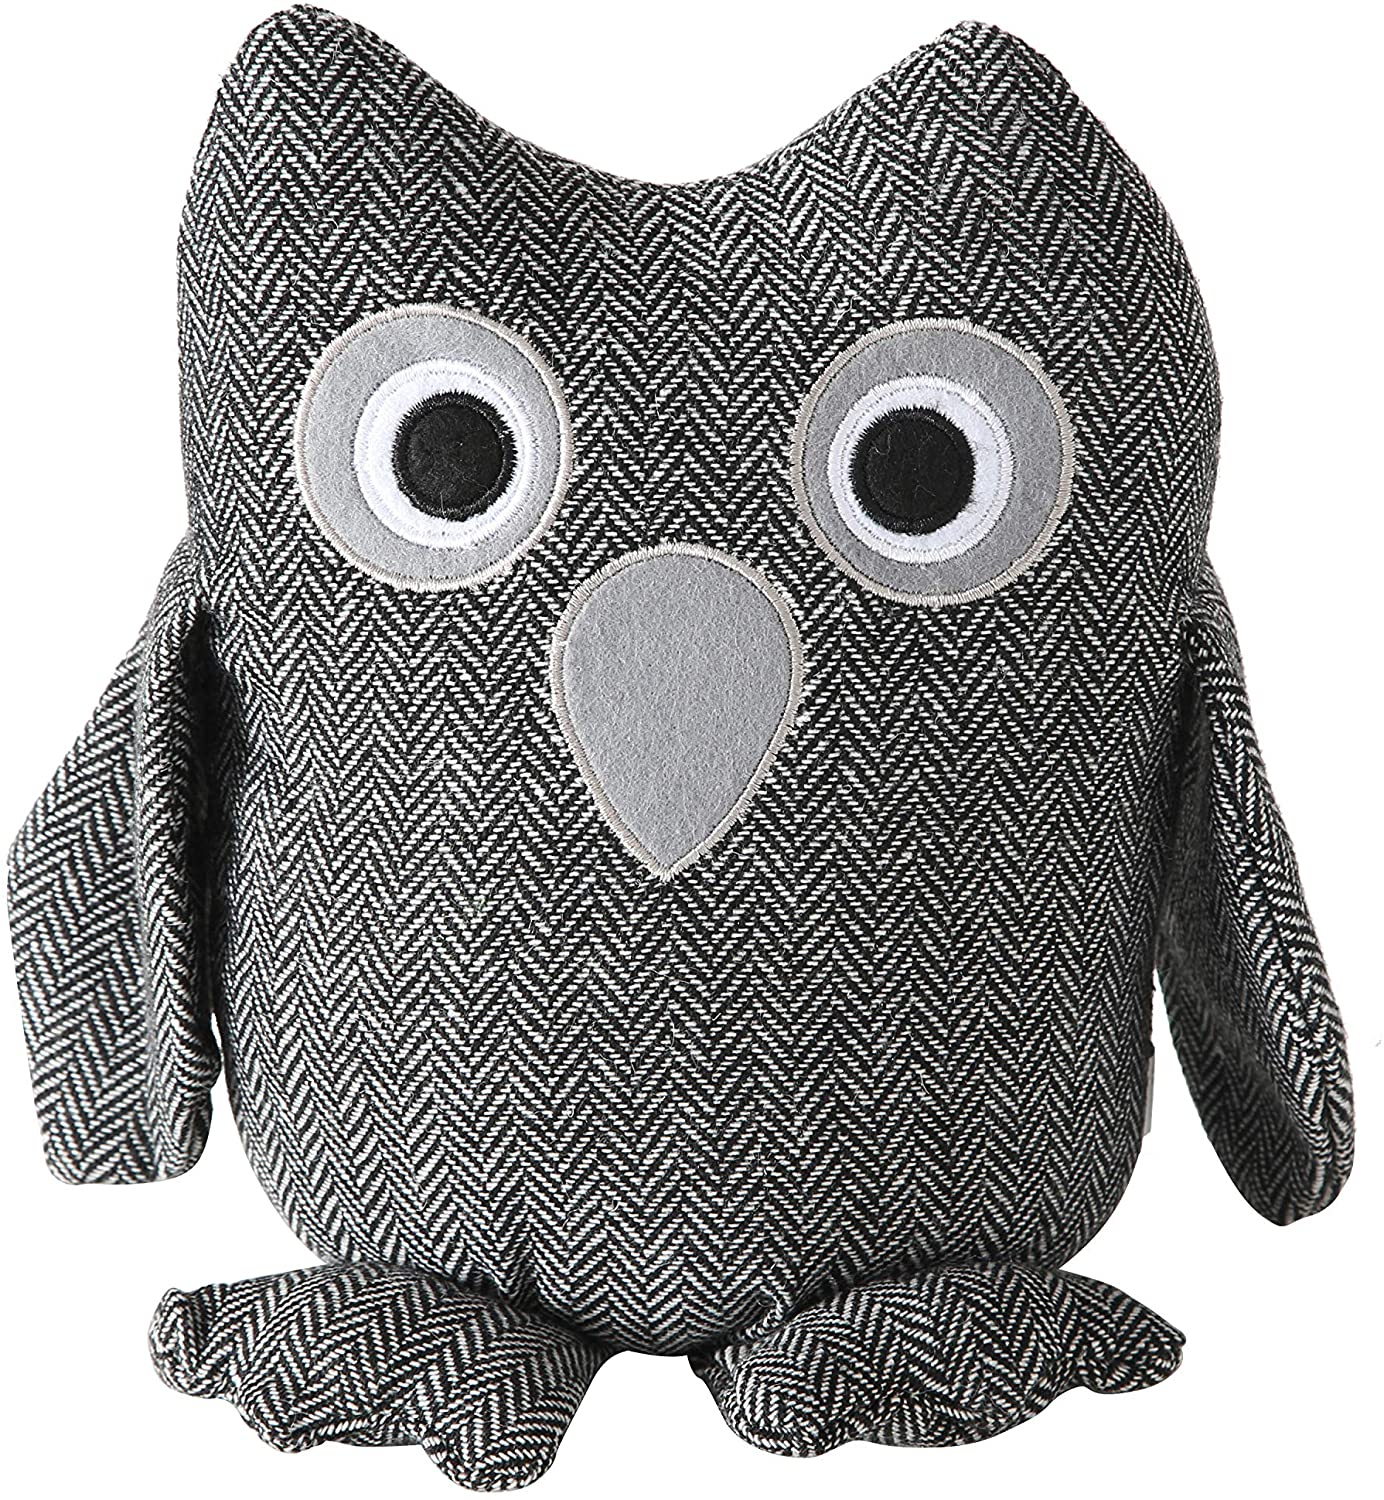 Baby Barn Owl Door Stopper, Rustic Herringbone Fabric with Gray and Black Details, Applique Eyes, Rustic Woven, Polyester, Sand Filling, Weighted Prop, 8 3/4 Inches Tall, 2.3 Pounds